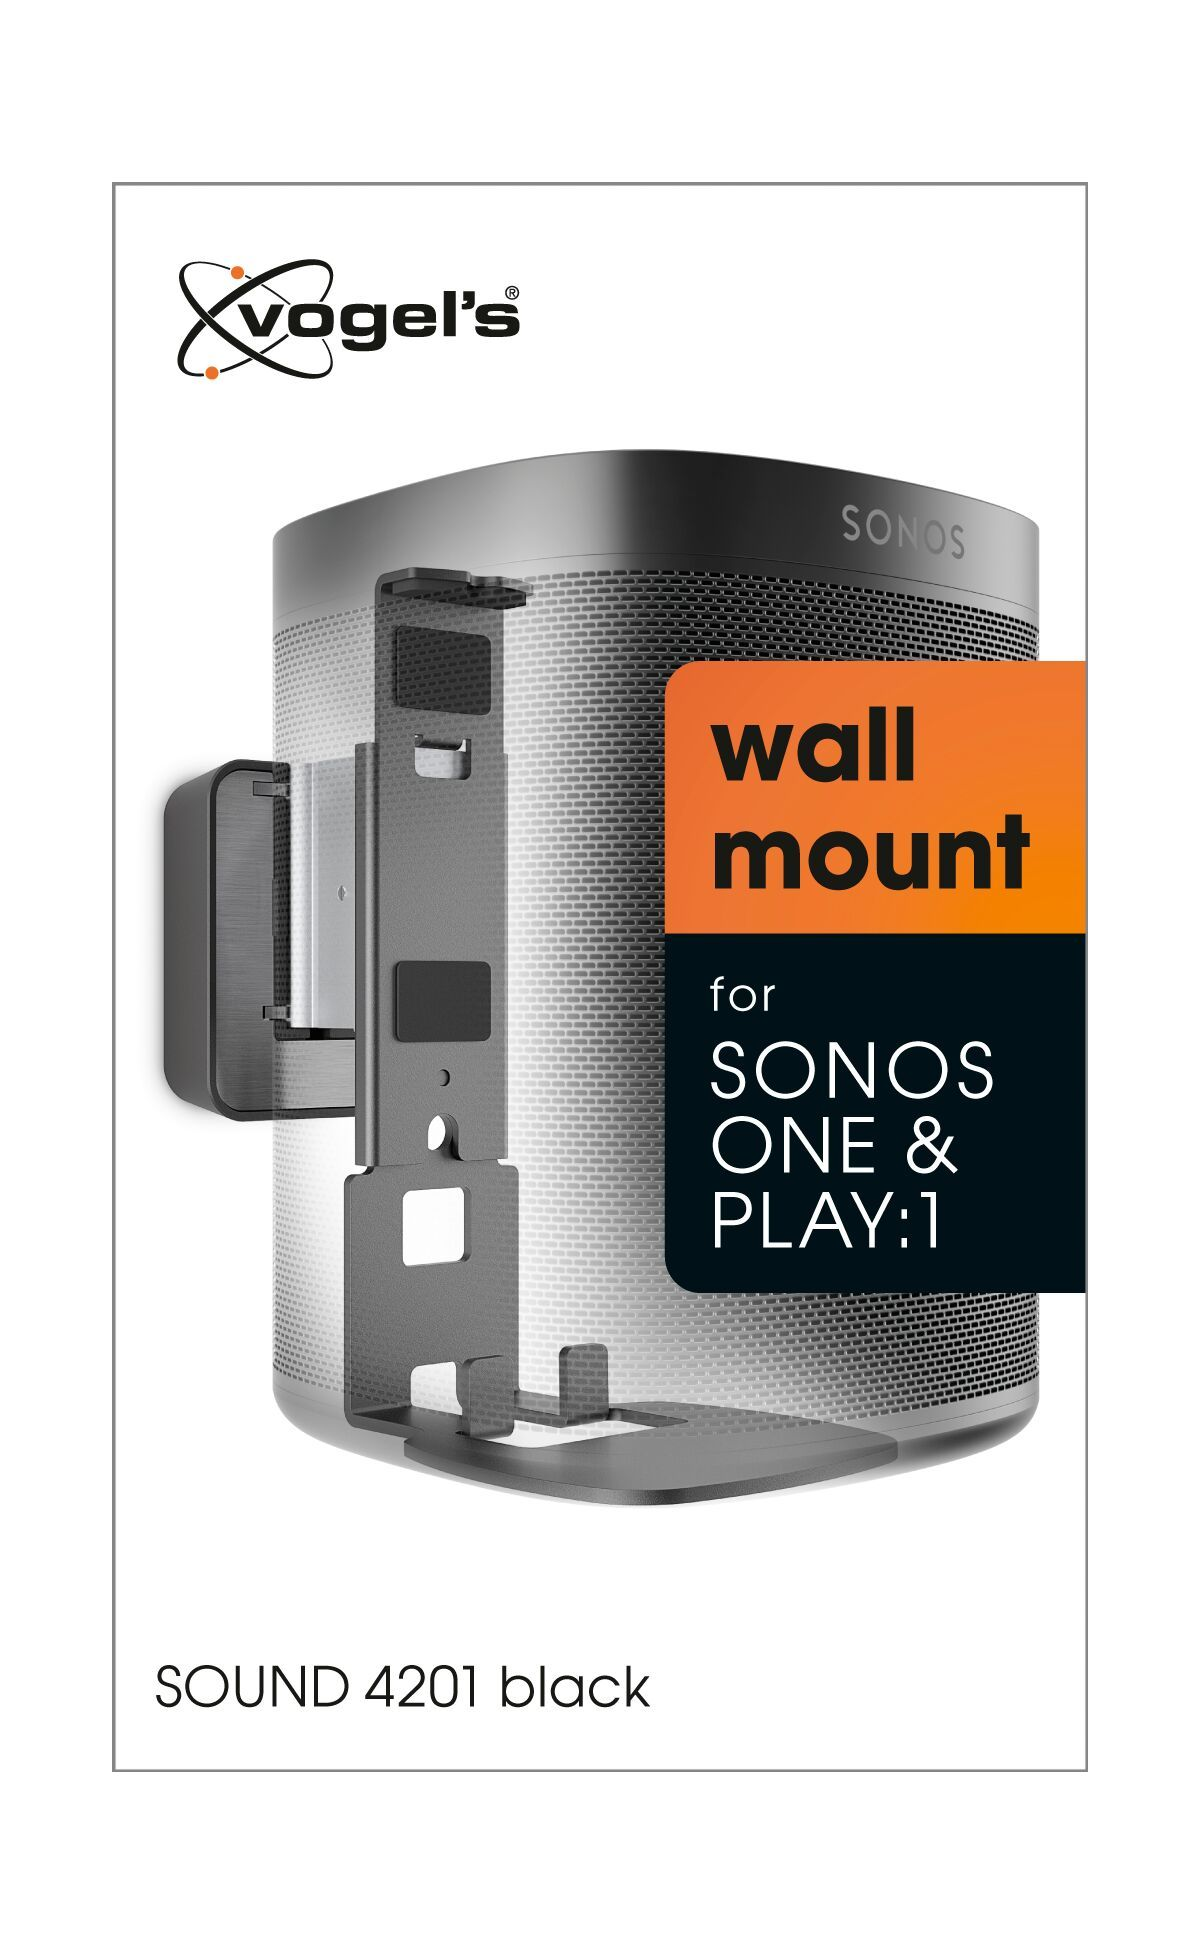 Vogel's SOUND 4201 Speaker Wall Mount for Sonos One (SL) & Play:1 (black) - Packaging front